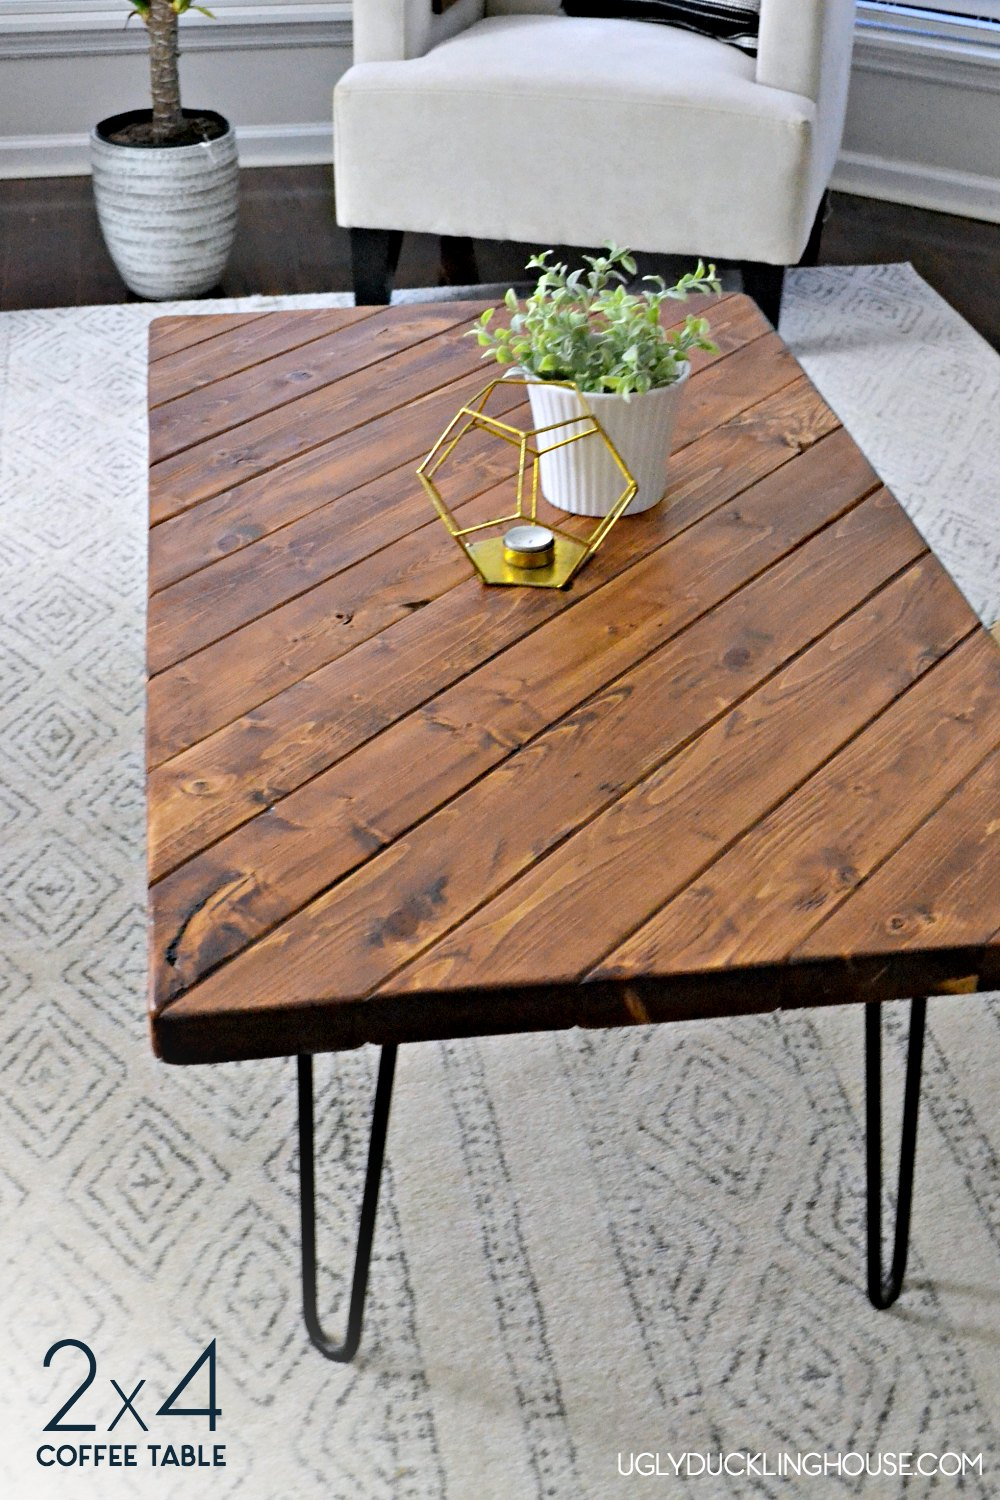 Remodelaholic 20 easy diy 2x4 wood projects for Coffee table diy ideas